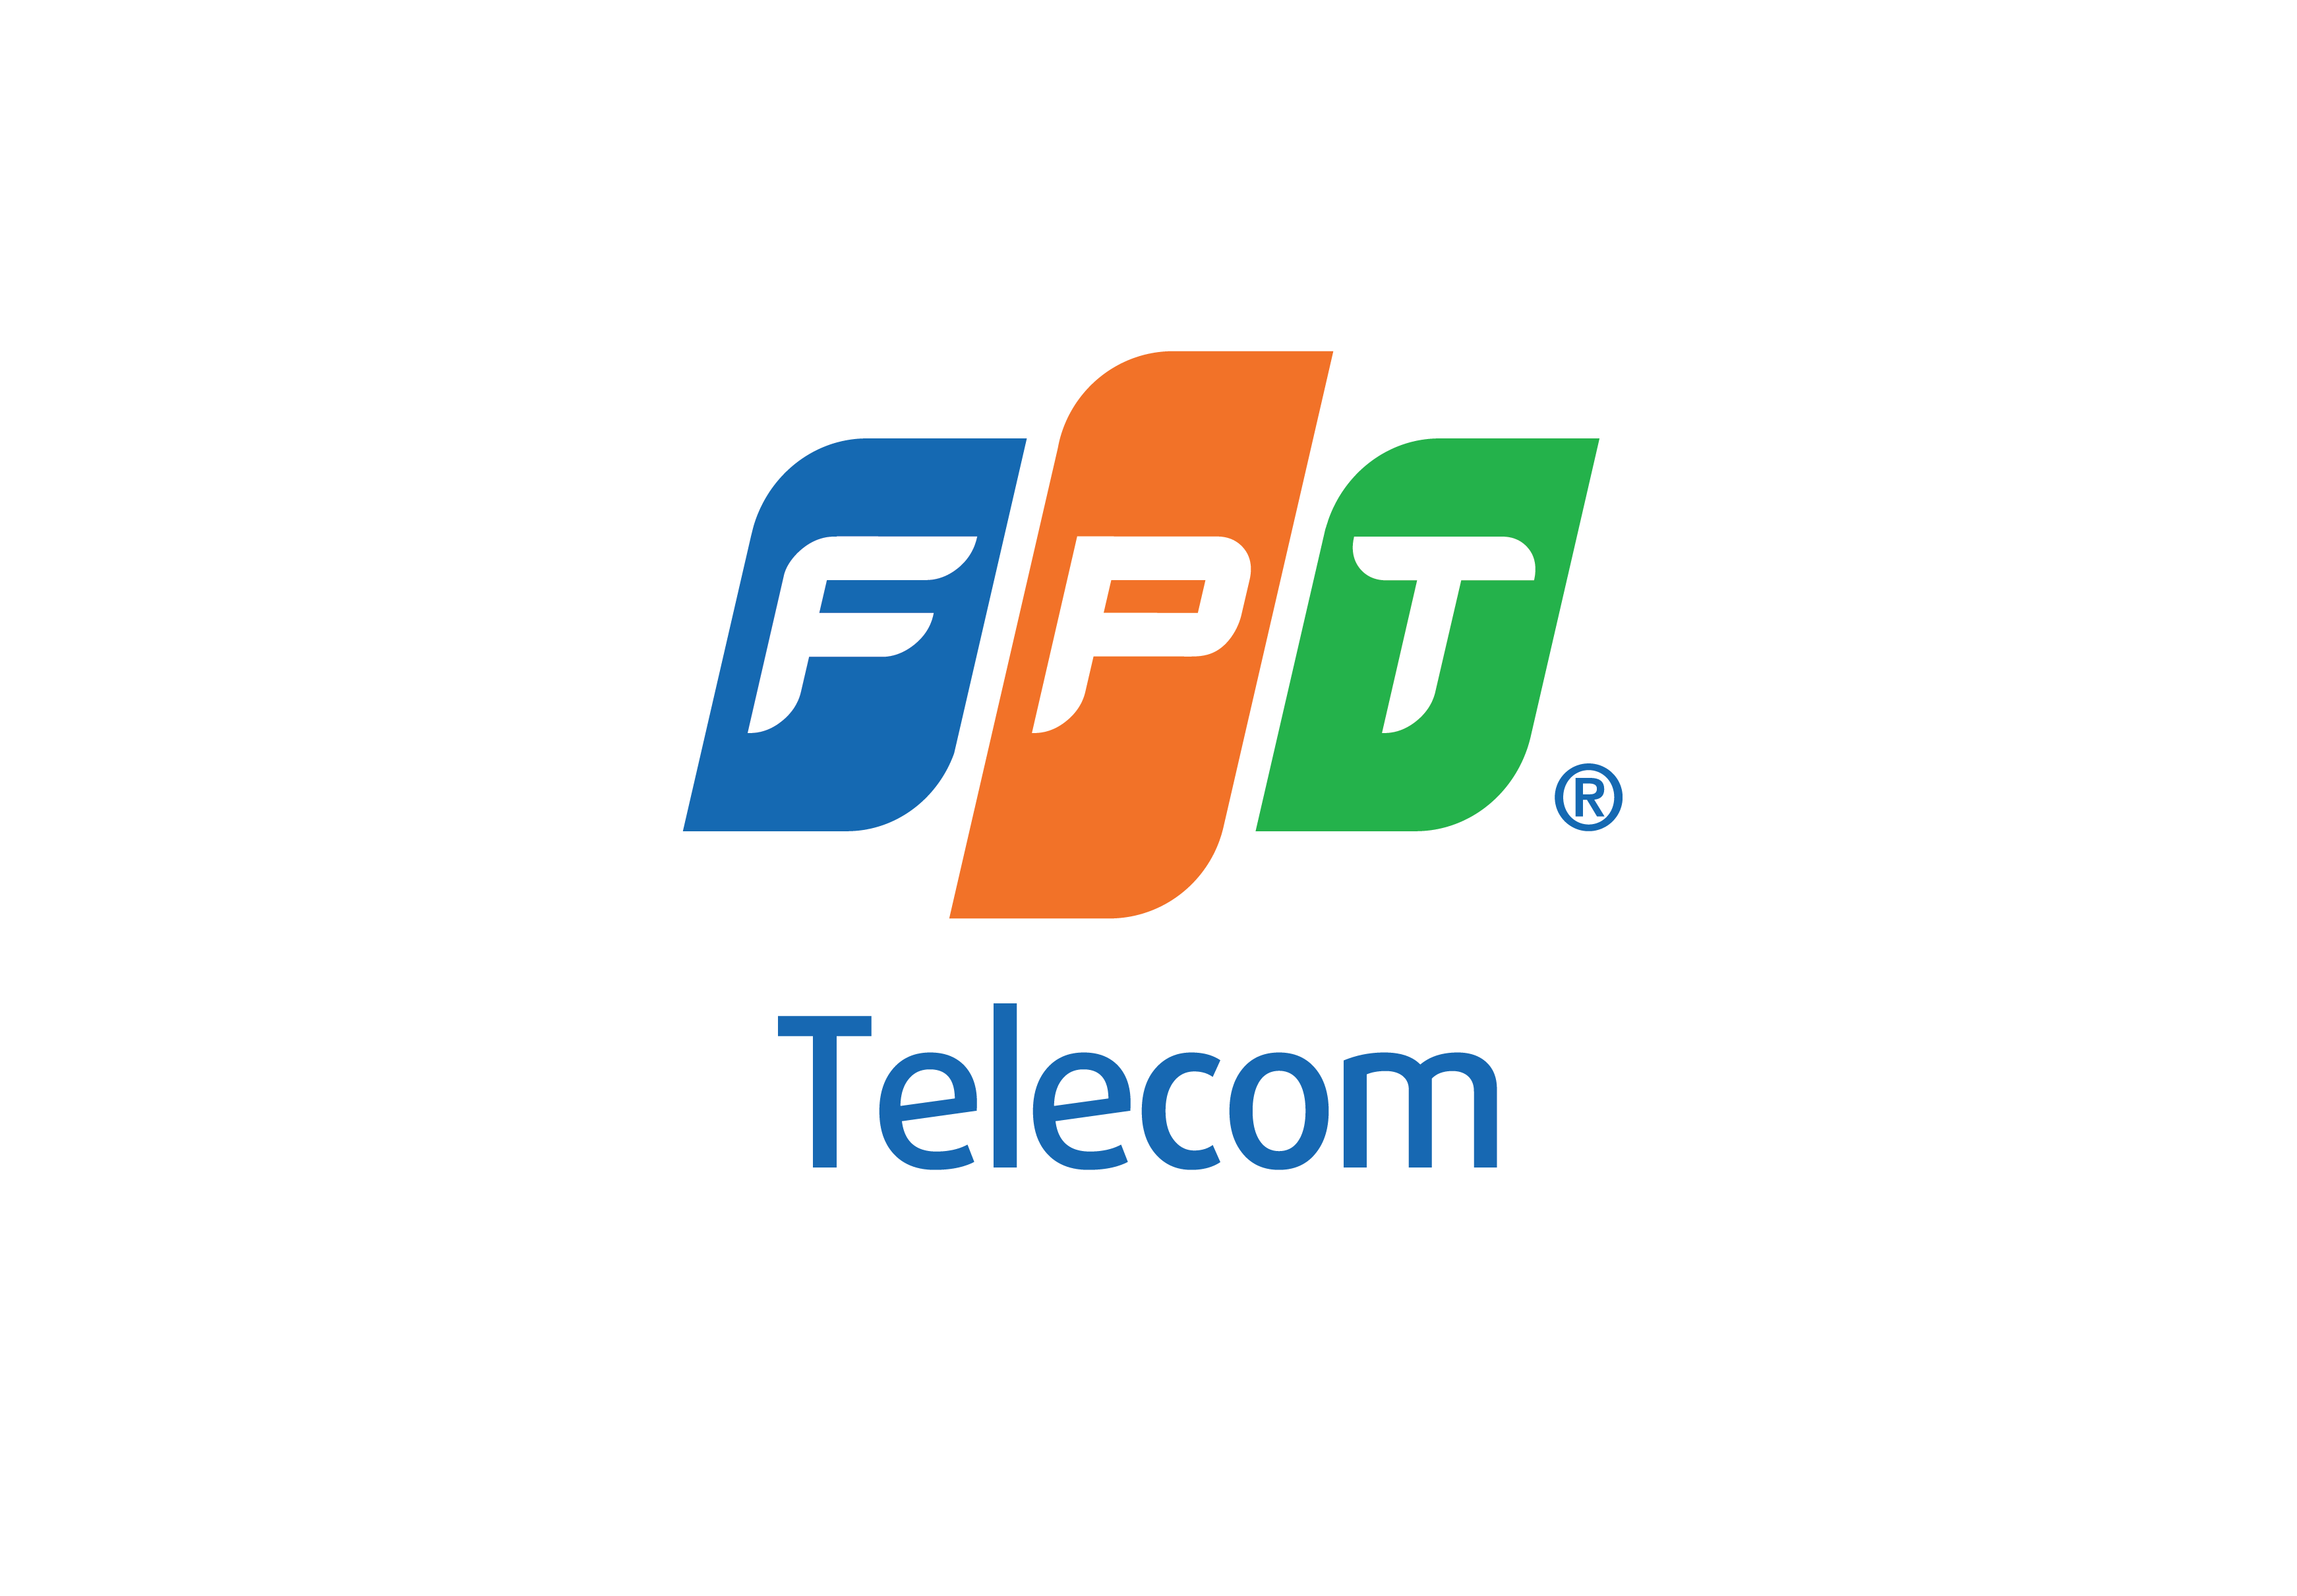 fpt-telecom-cong-ty-co-phan-vien-thong-fpt